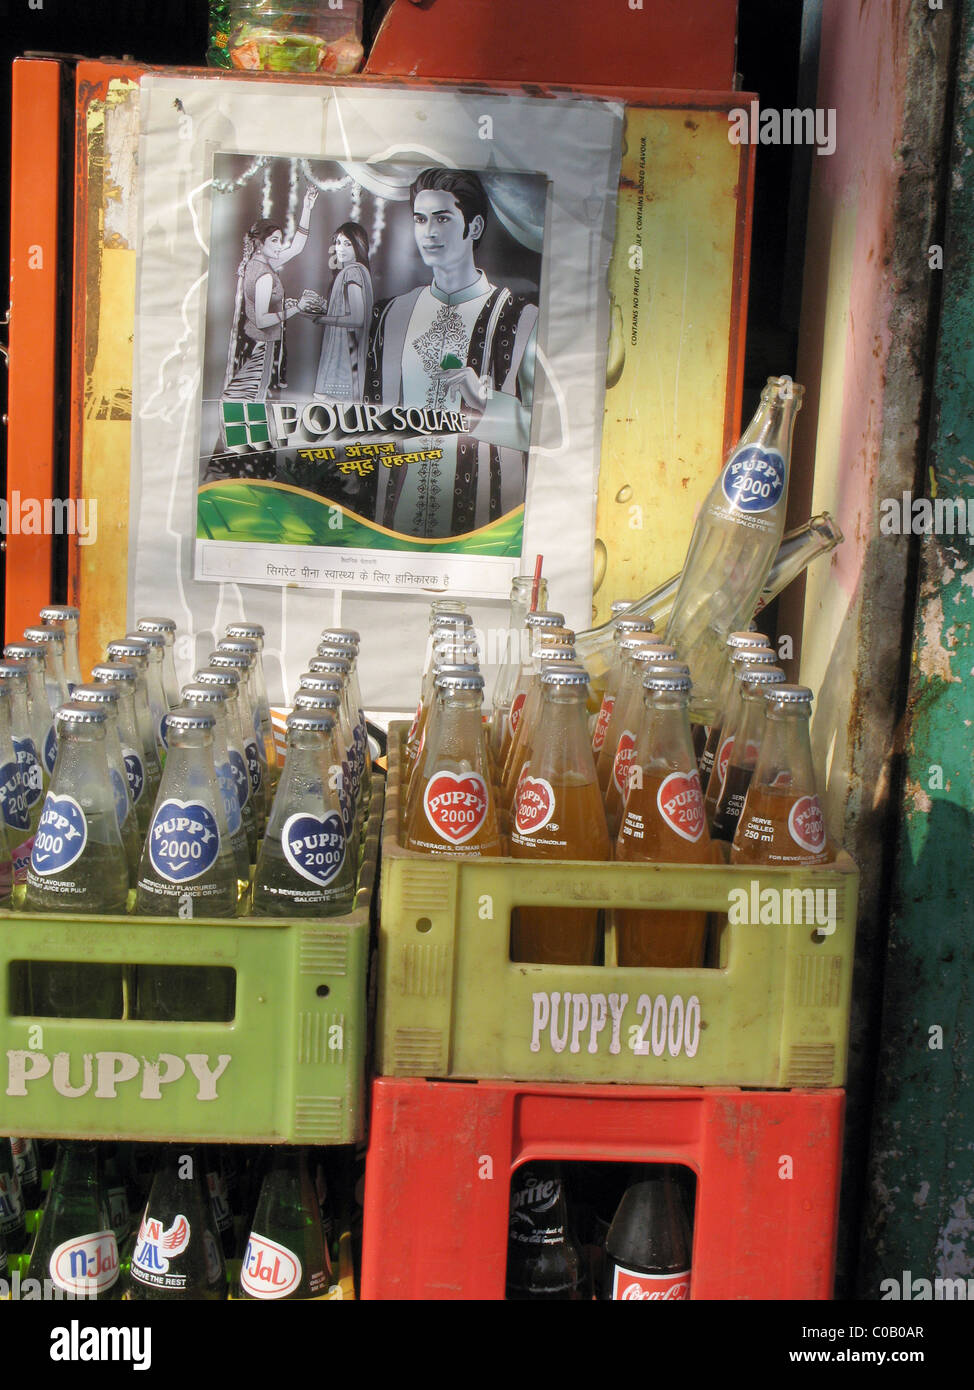 Soft Drink Bottles High Resolution Stock Photography and Images - Alamy